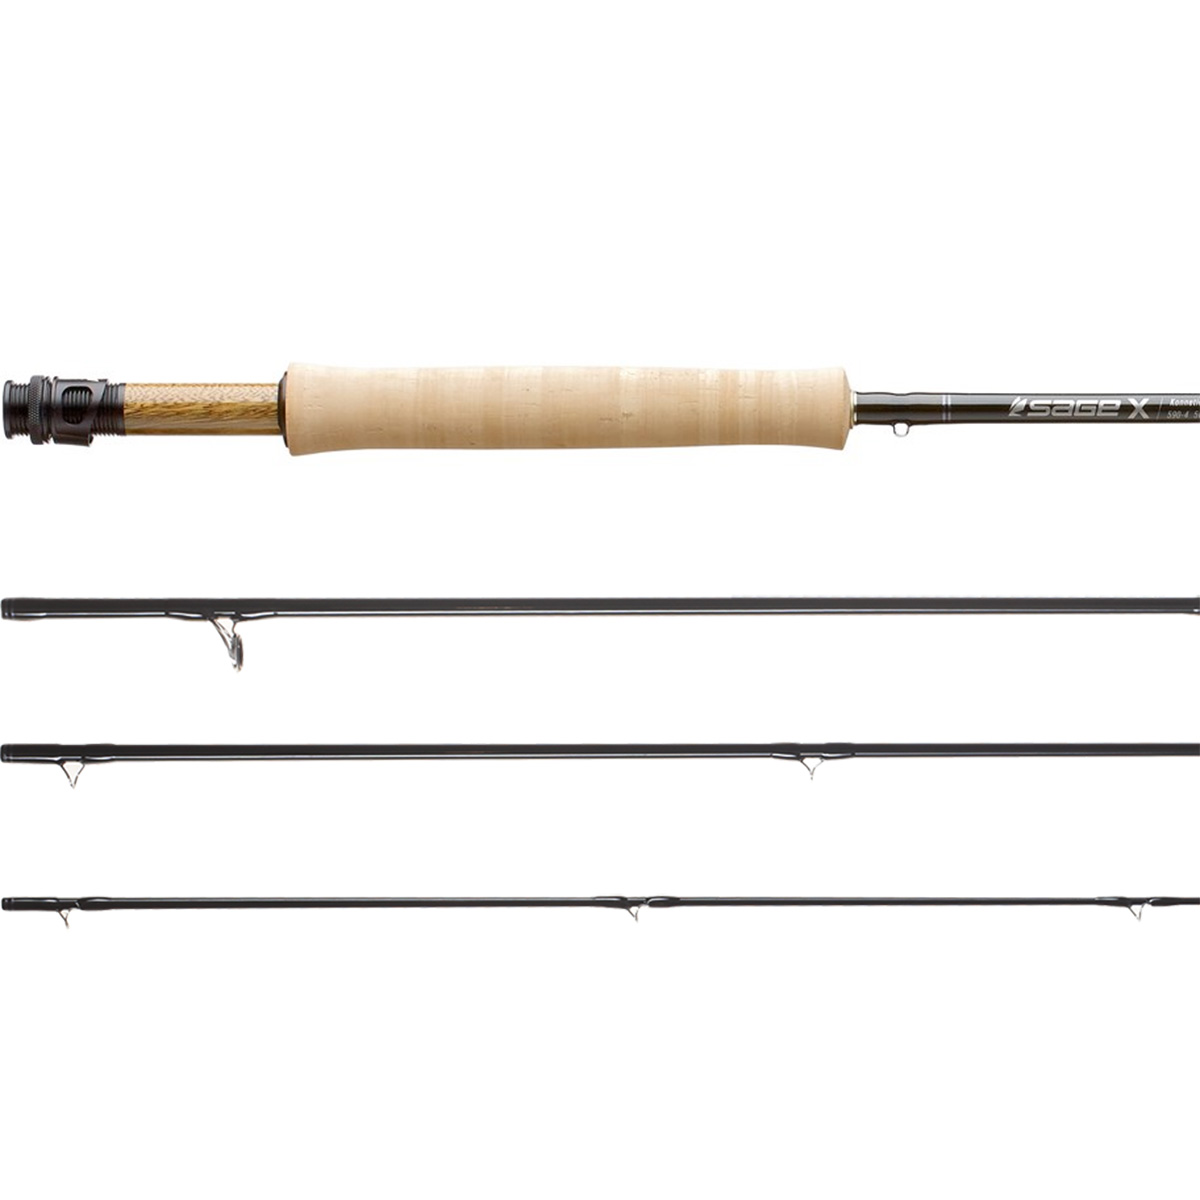 Sage X Rod - (Fly (Fly - Fishing Rods) ae3d71